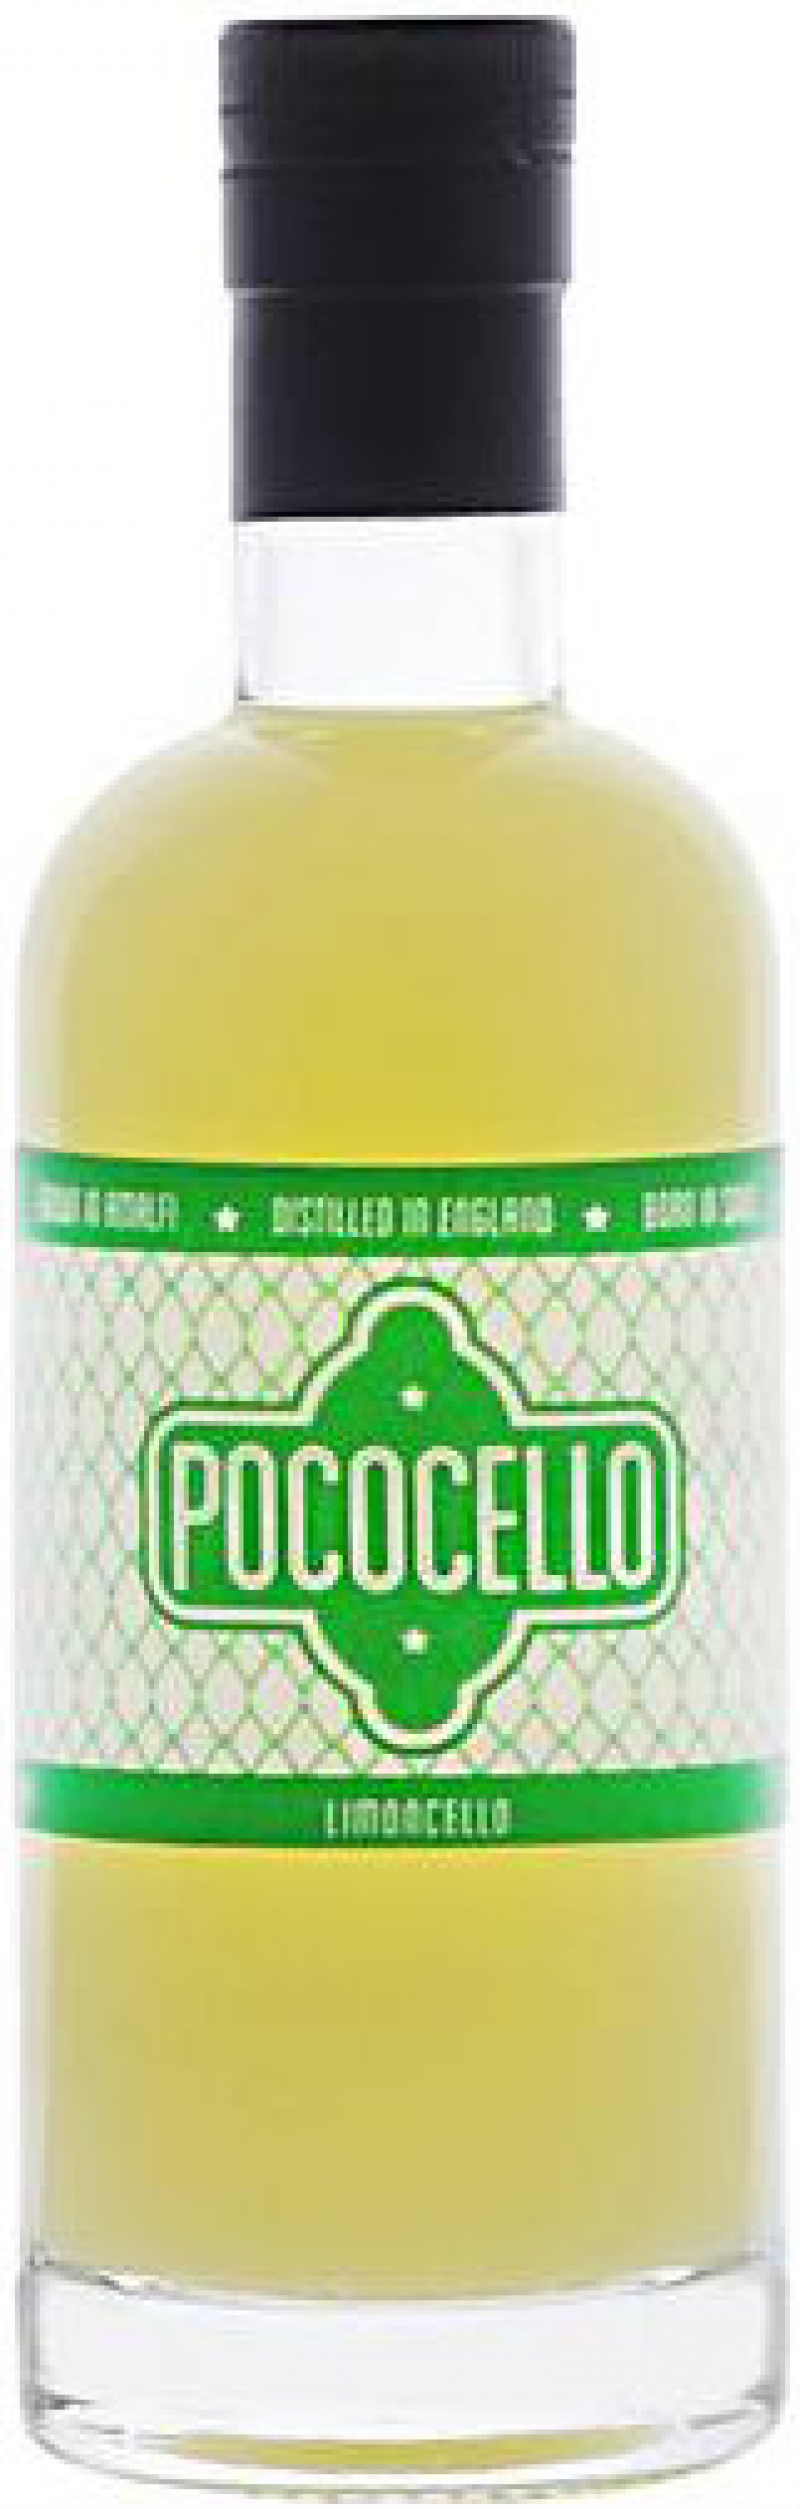 Image of Pococello - Limoncello